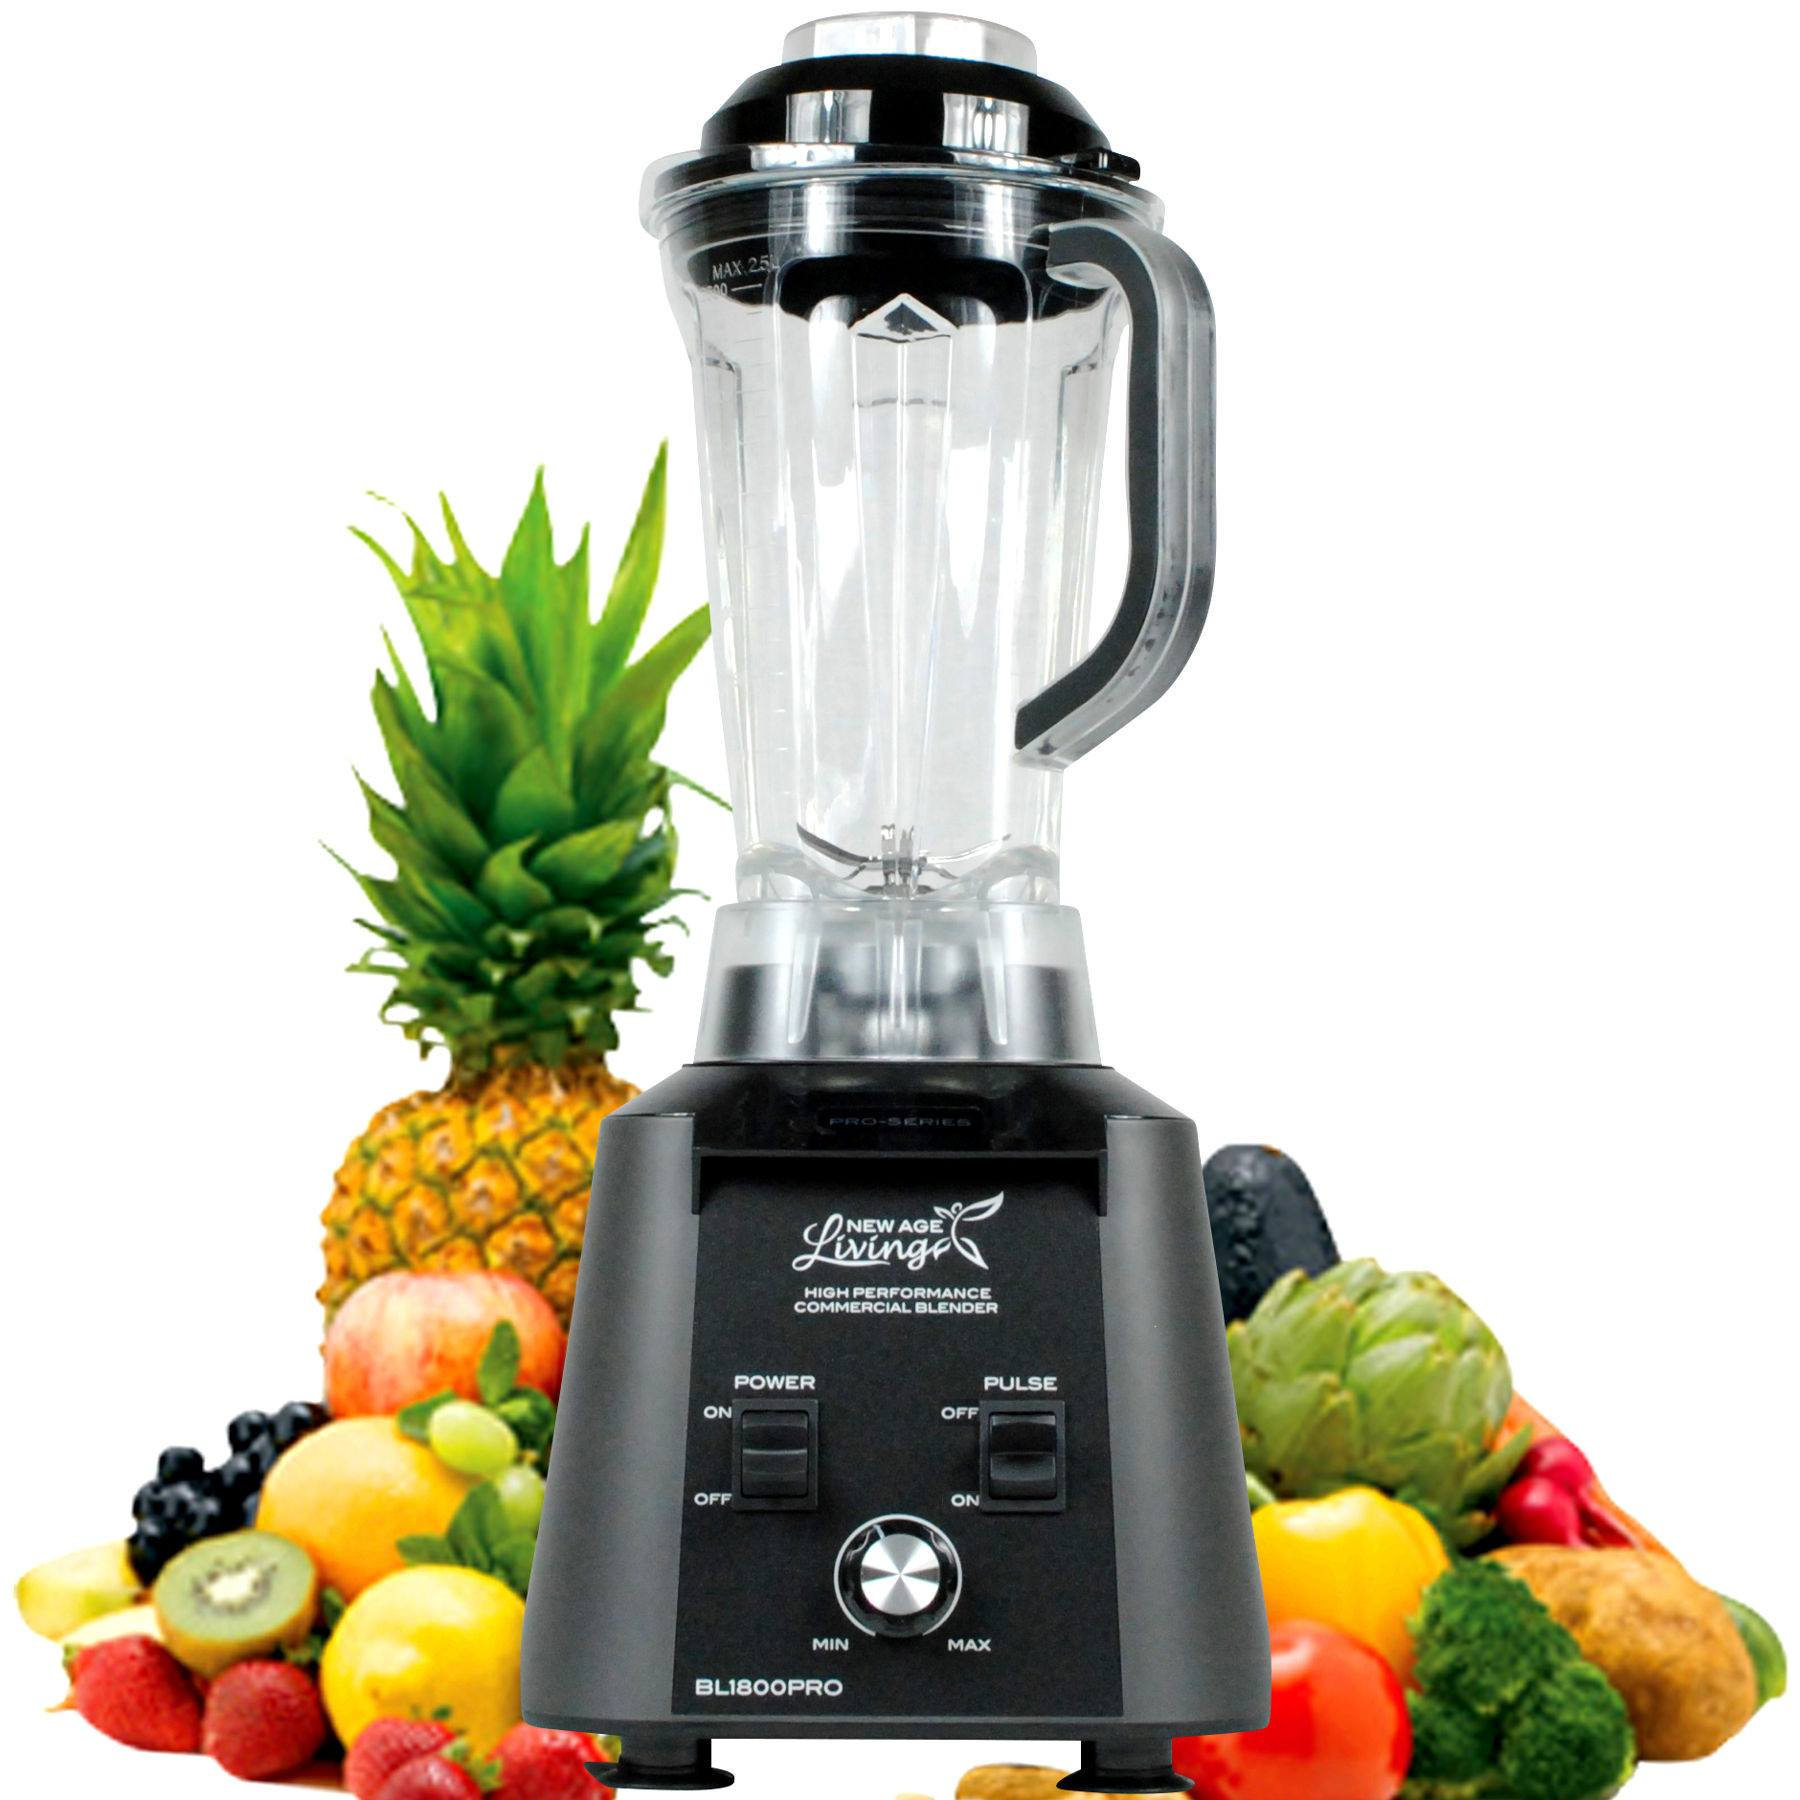 Best Blender for Juicing – These Blenders are Best for Making Juices